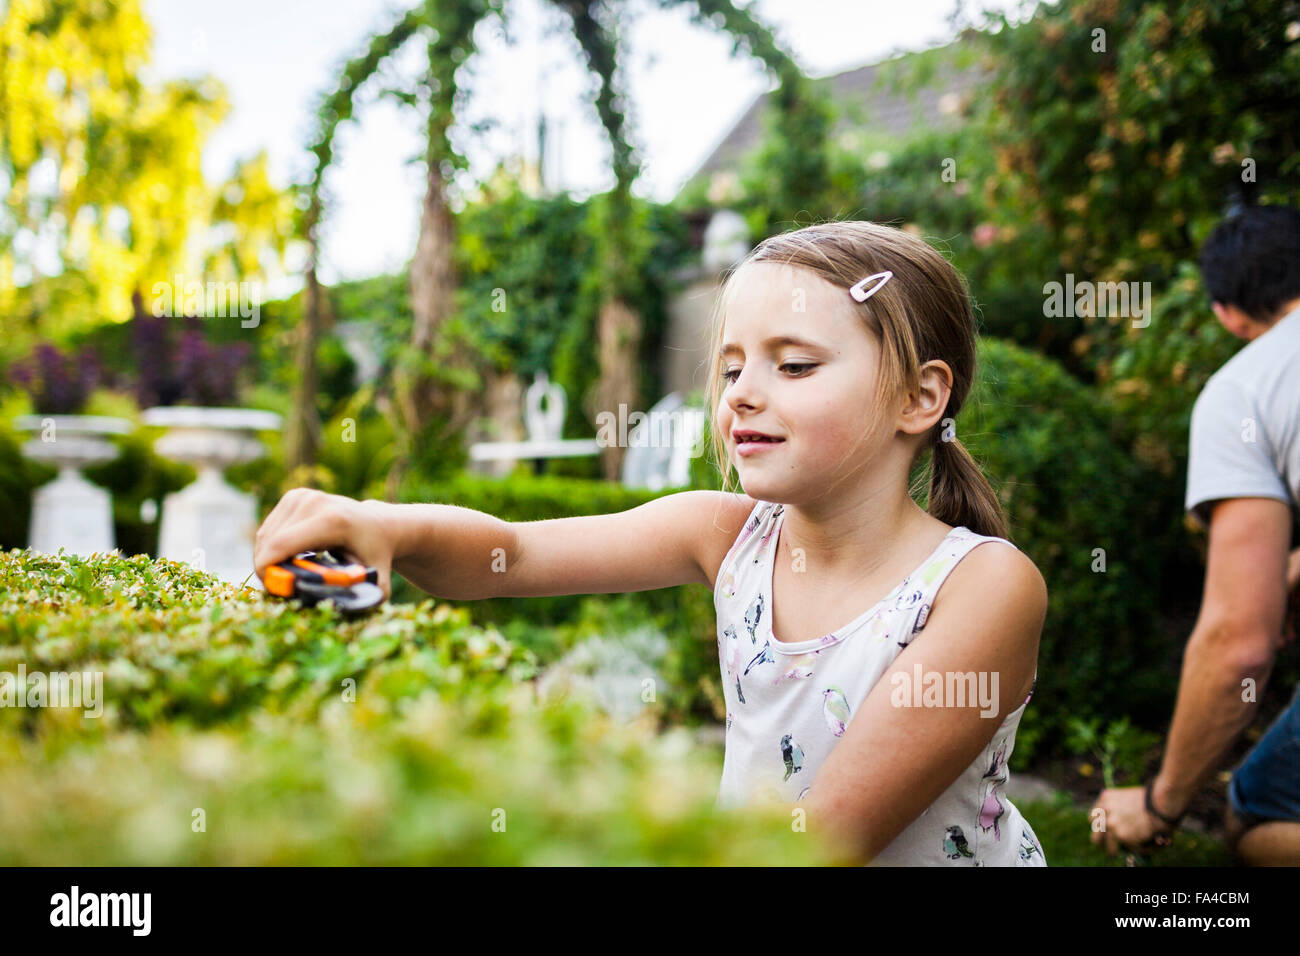 Girl cutting plant with father gardening in background - Stock Image